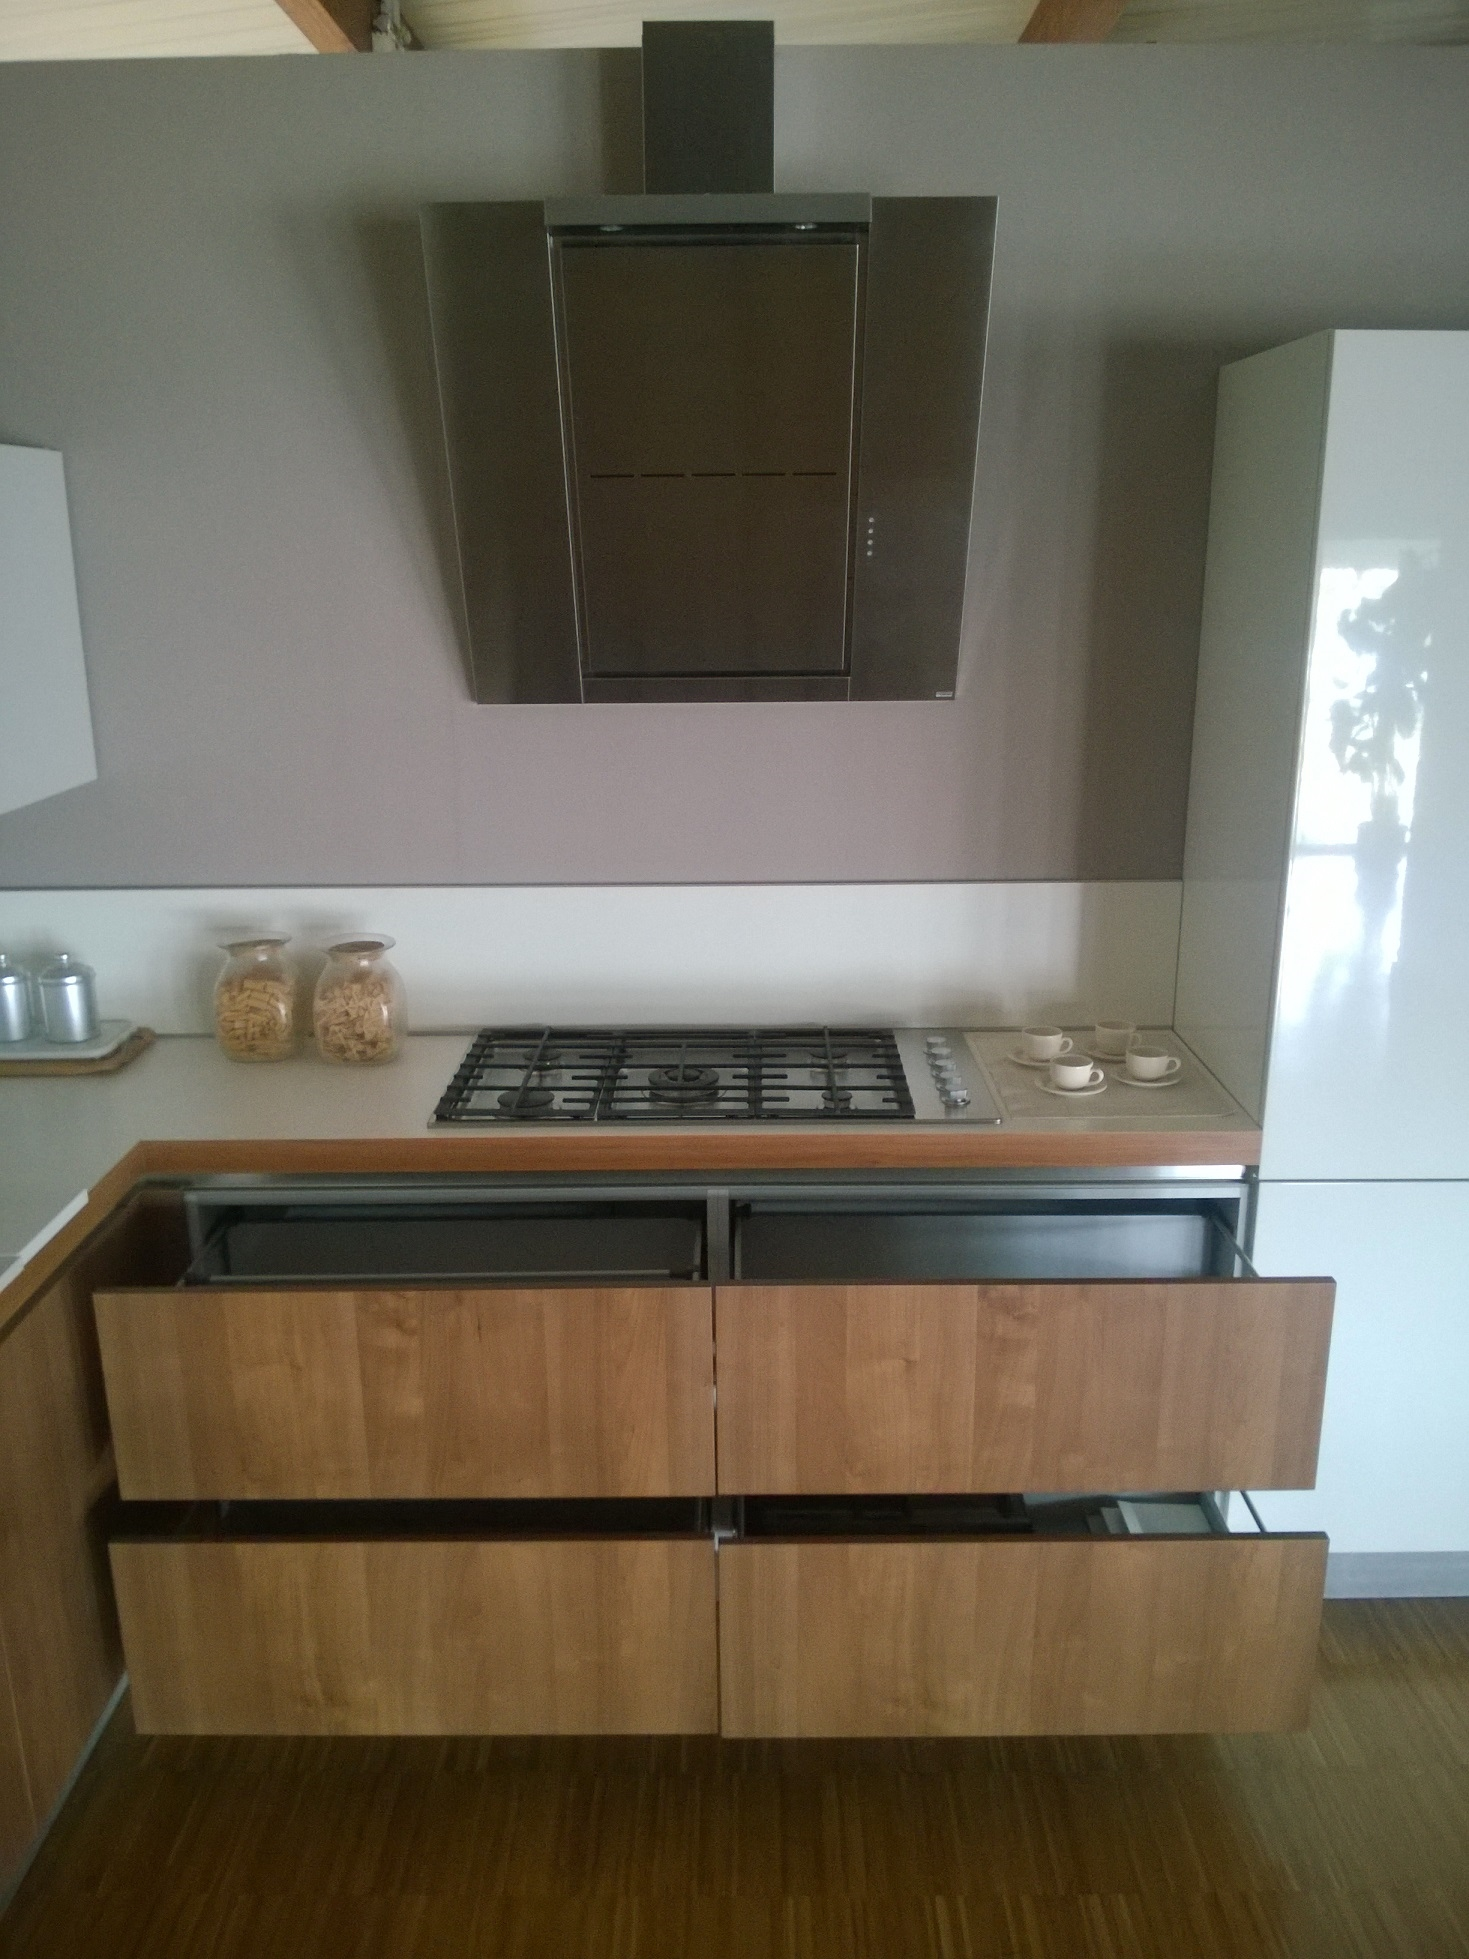 Bontempi Cucine. Fabulous Terms And Conditions Apply Exdisplay Does ...